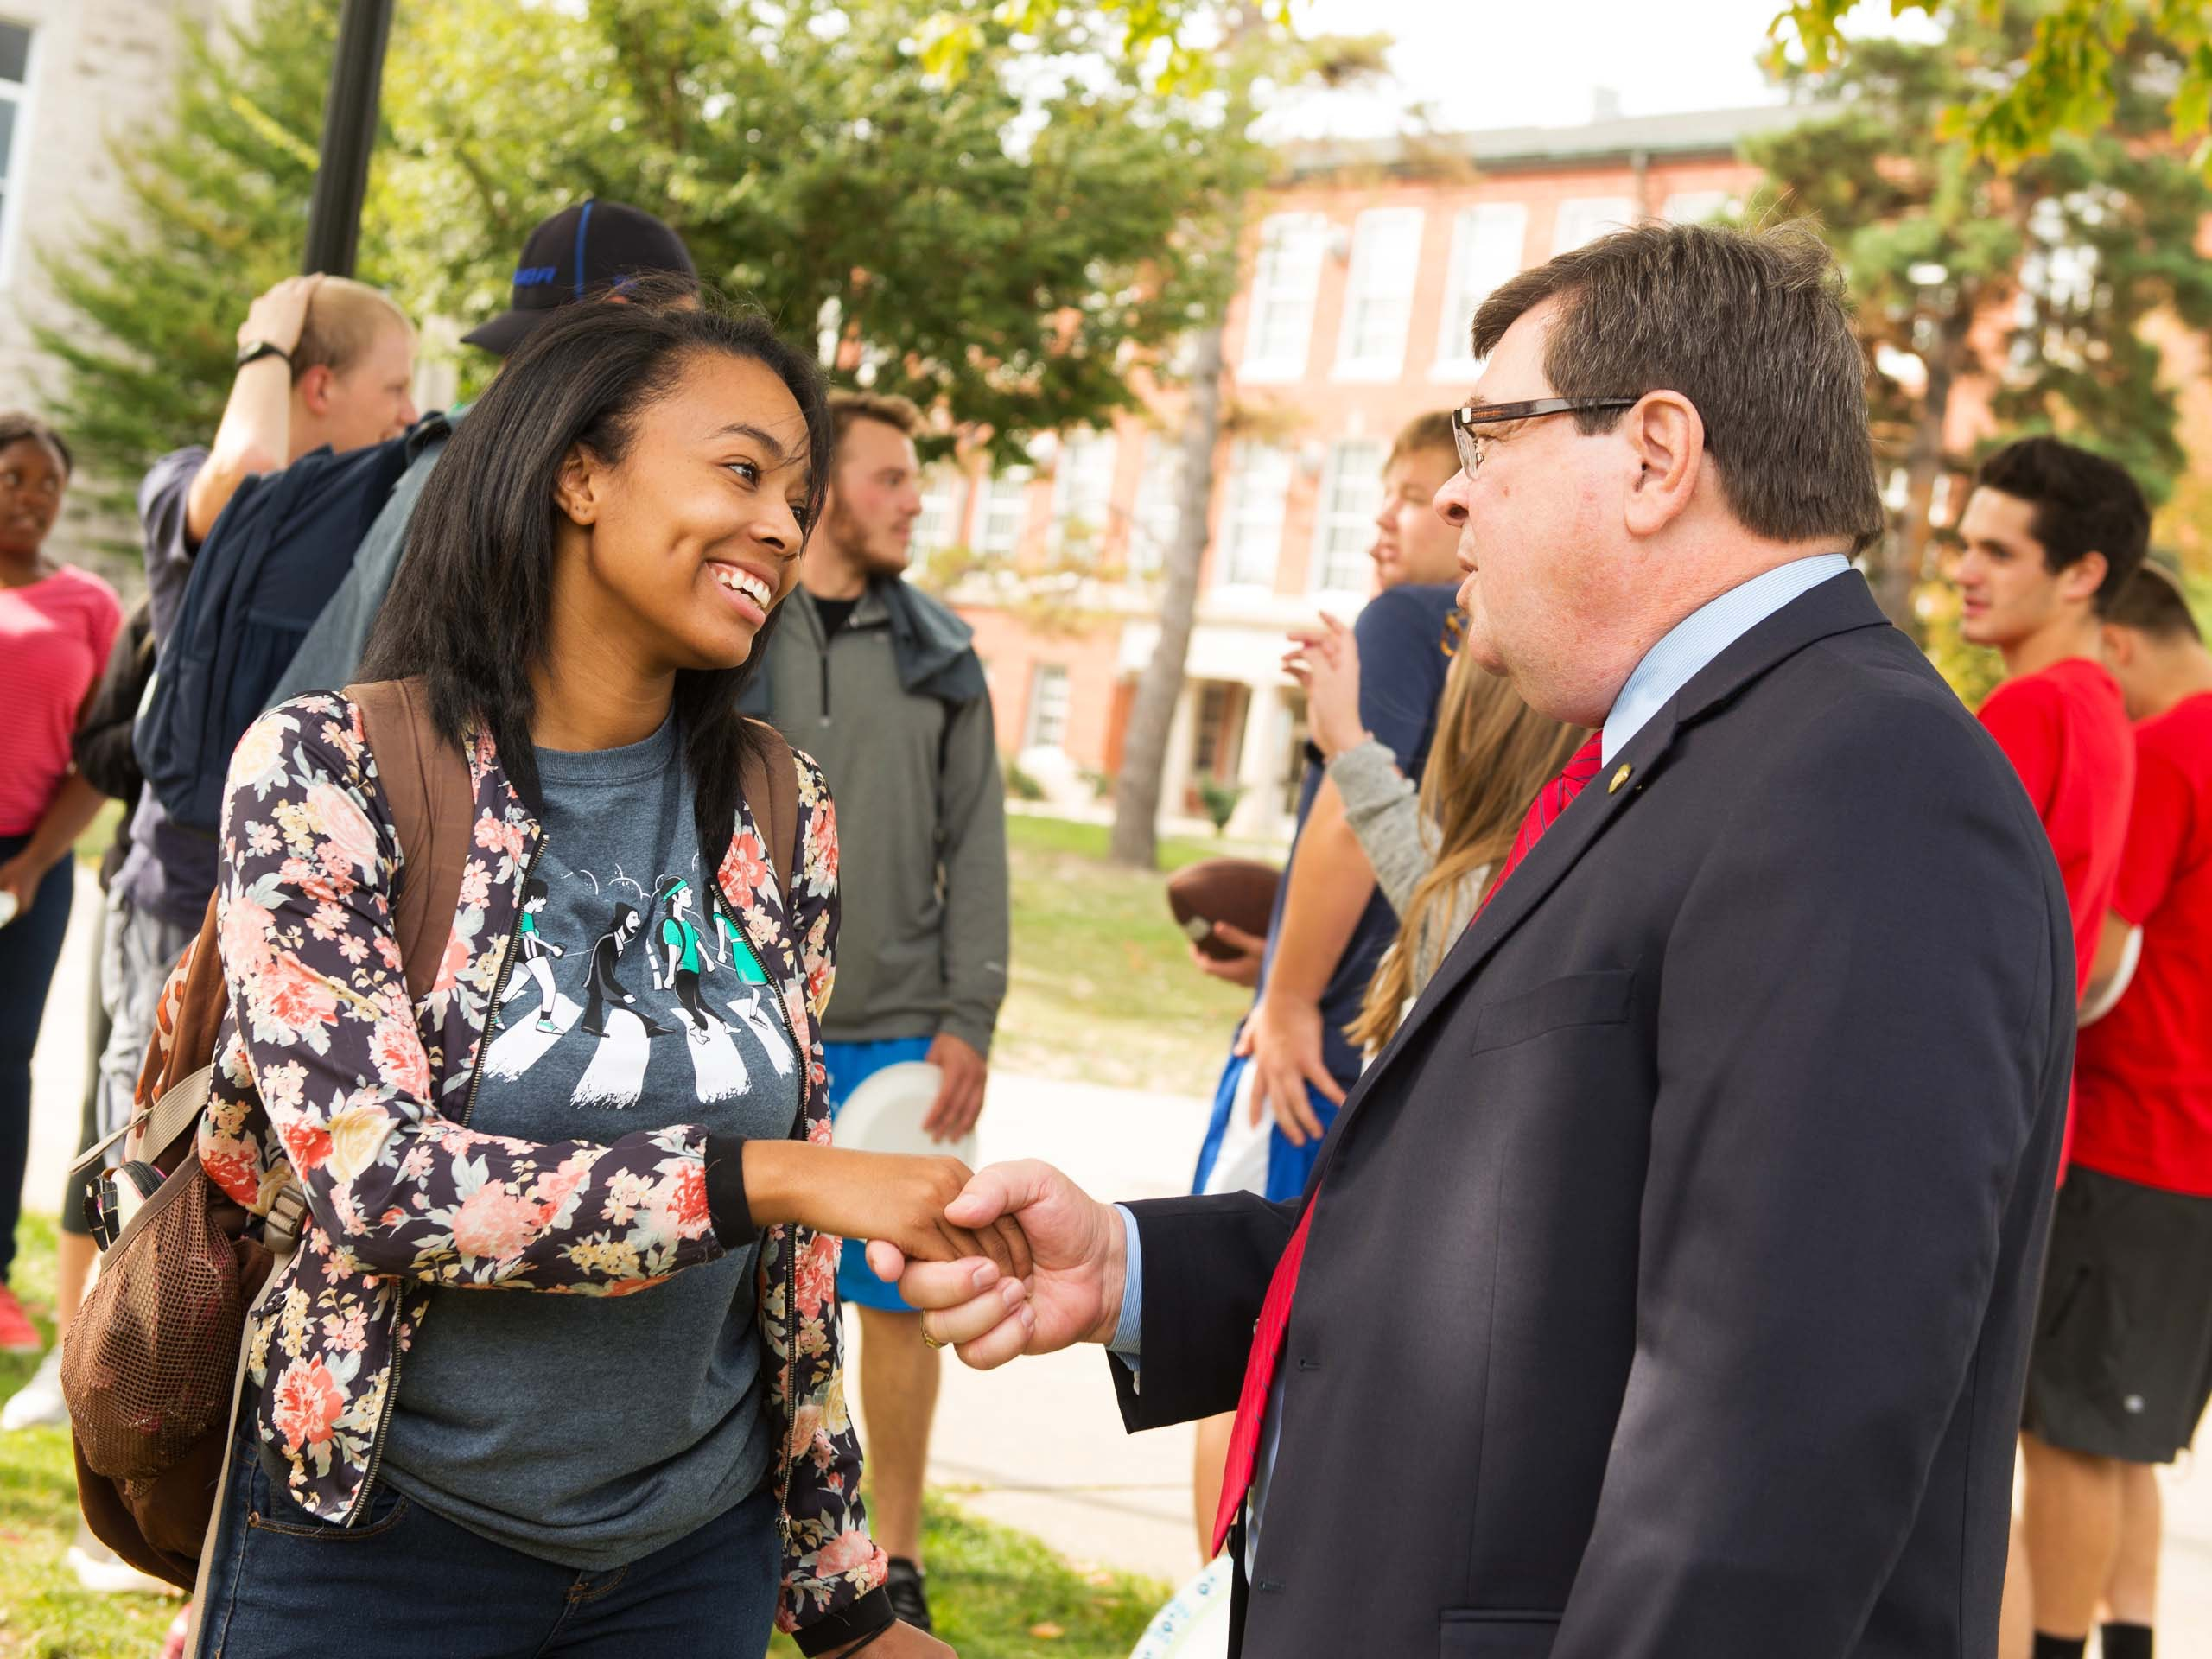 President Dietz shaking hands with a student.